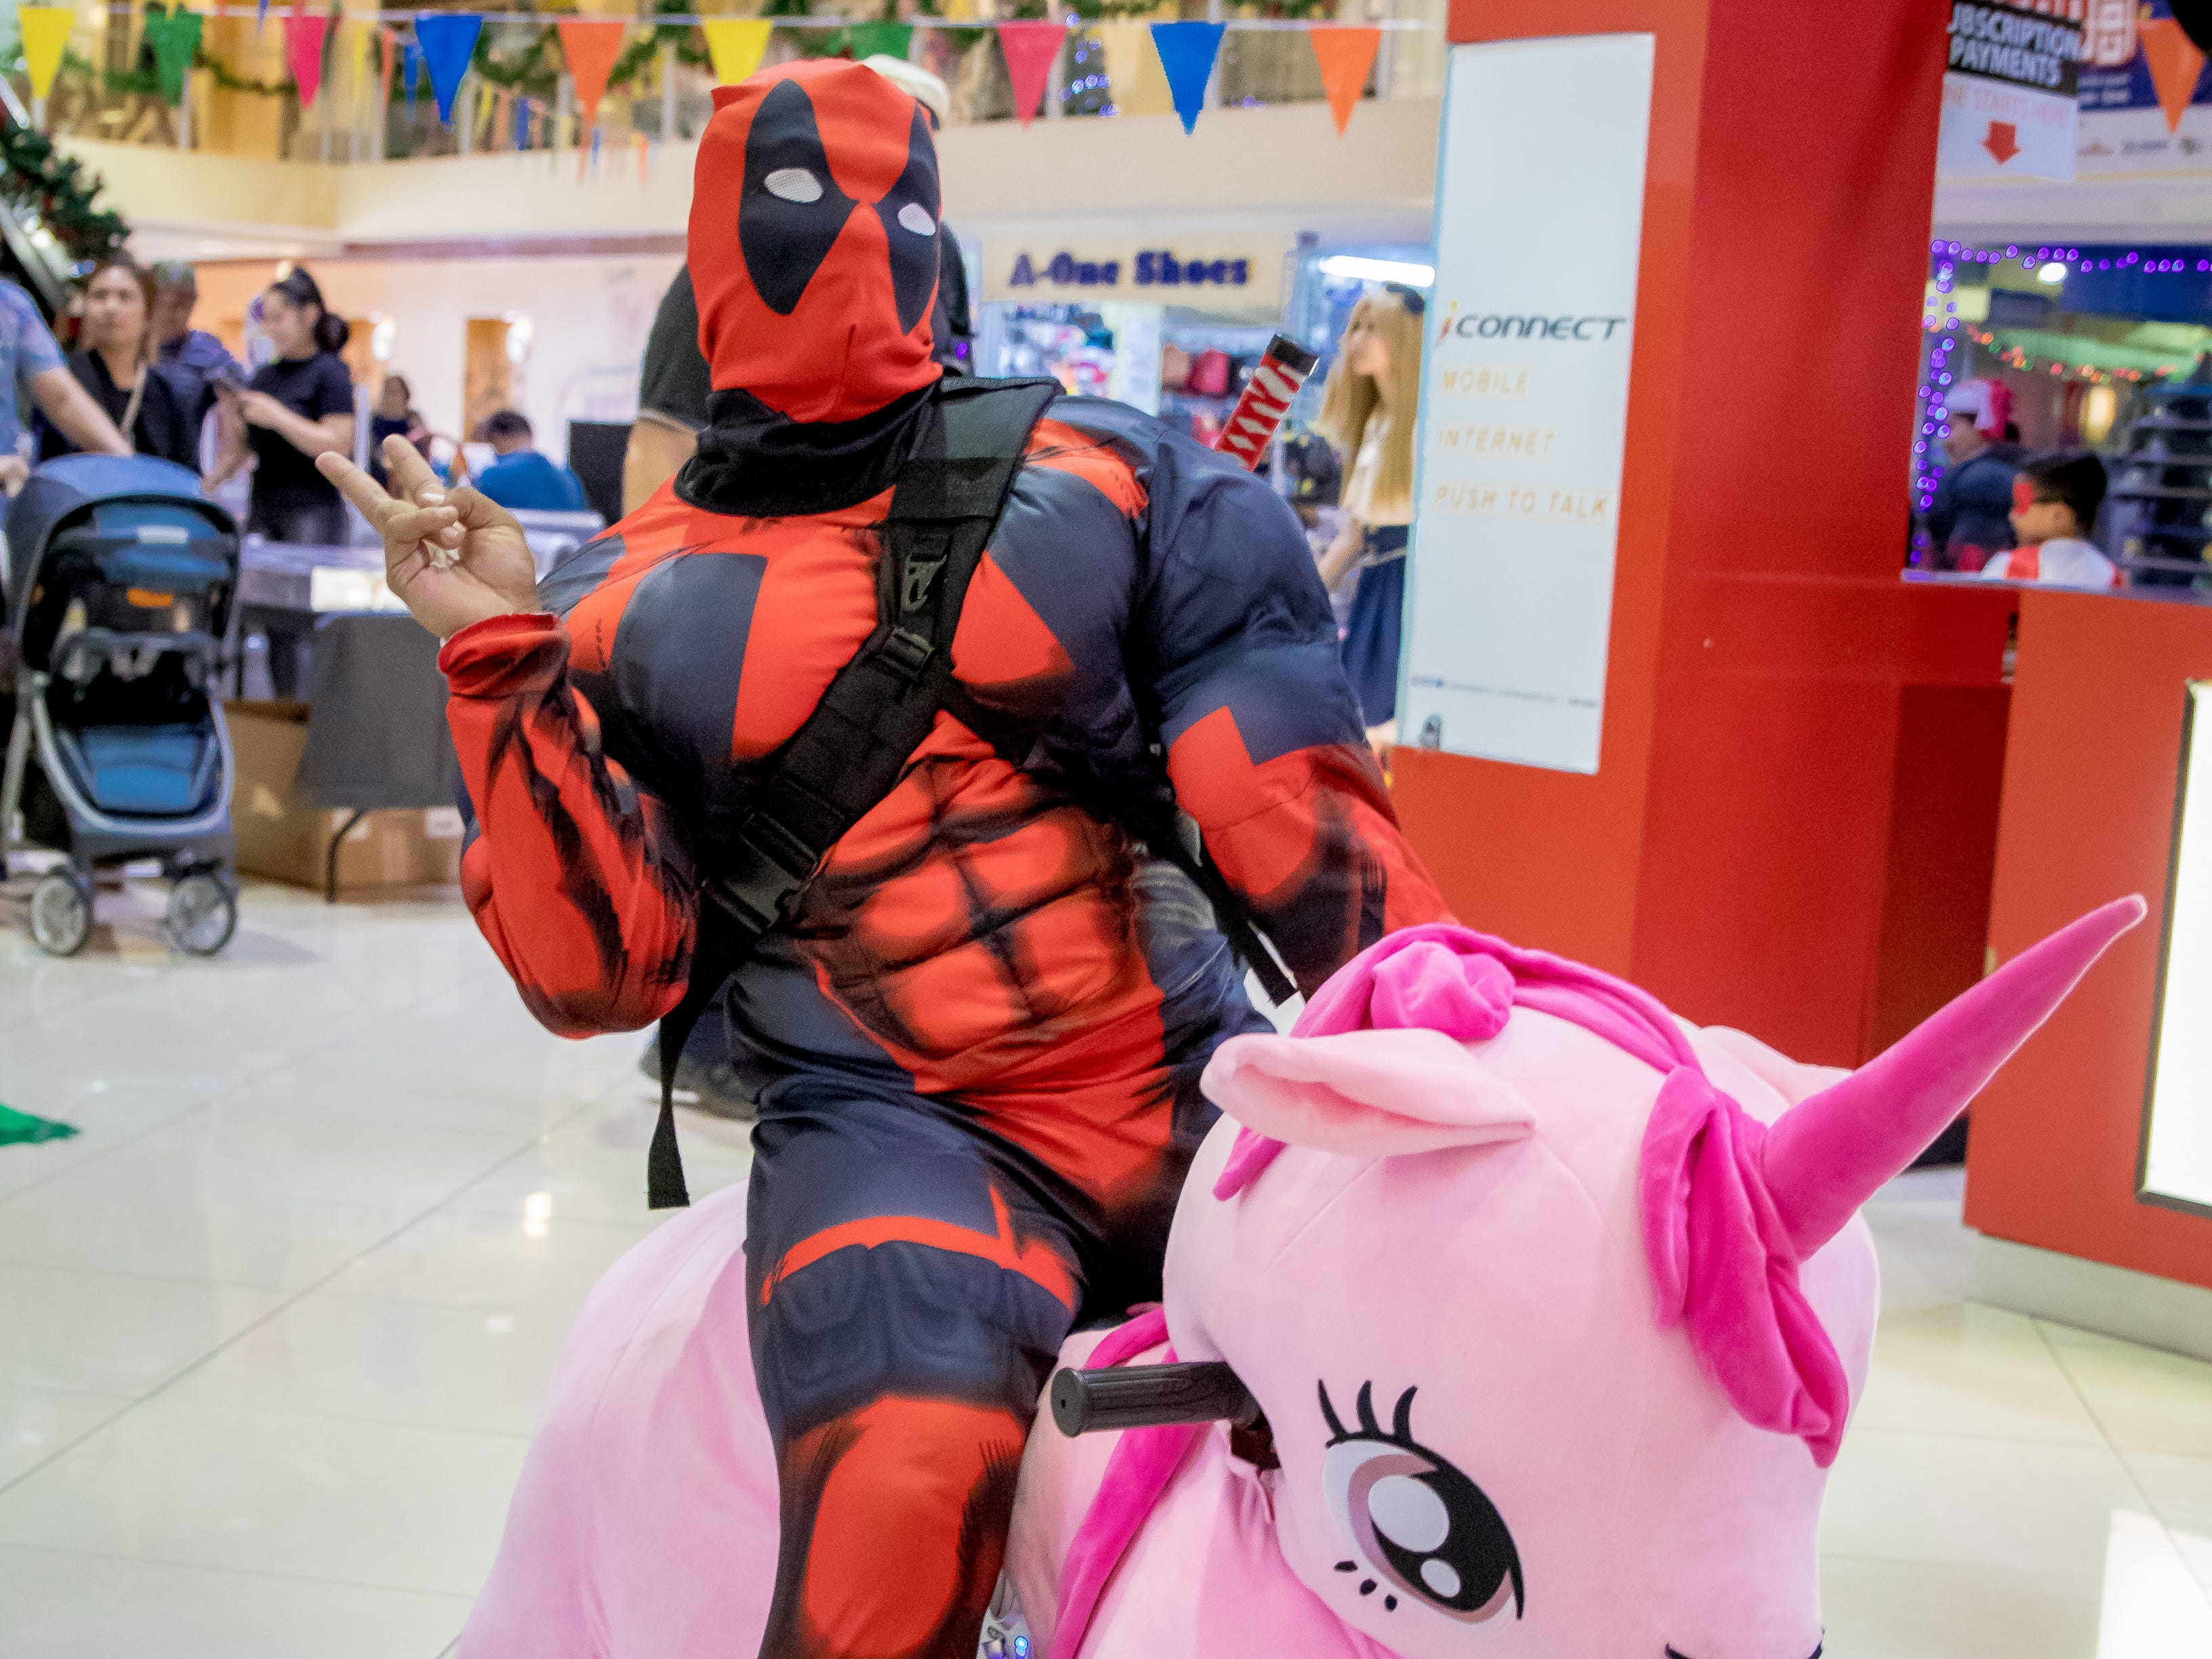 Cosplayers take a ride on an amusement ride during the Herocon event held at Agana Shopping Center on Dec. 9.